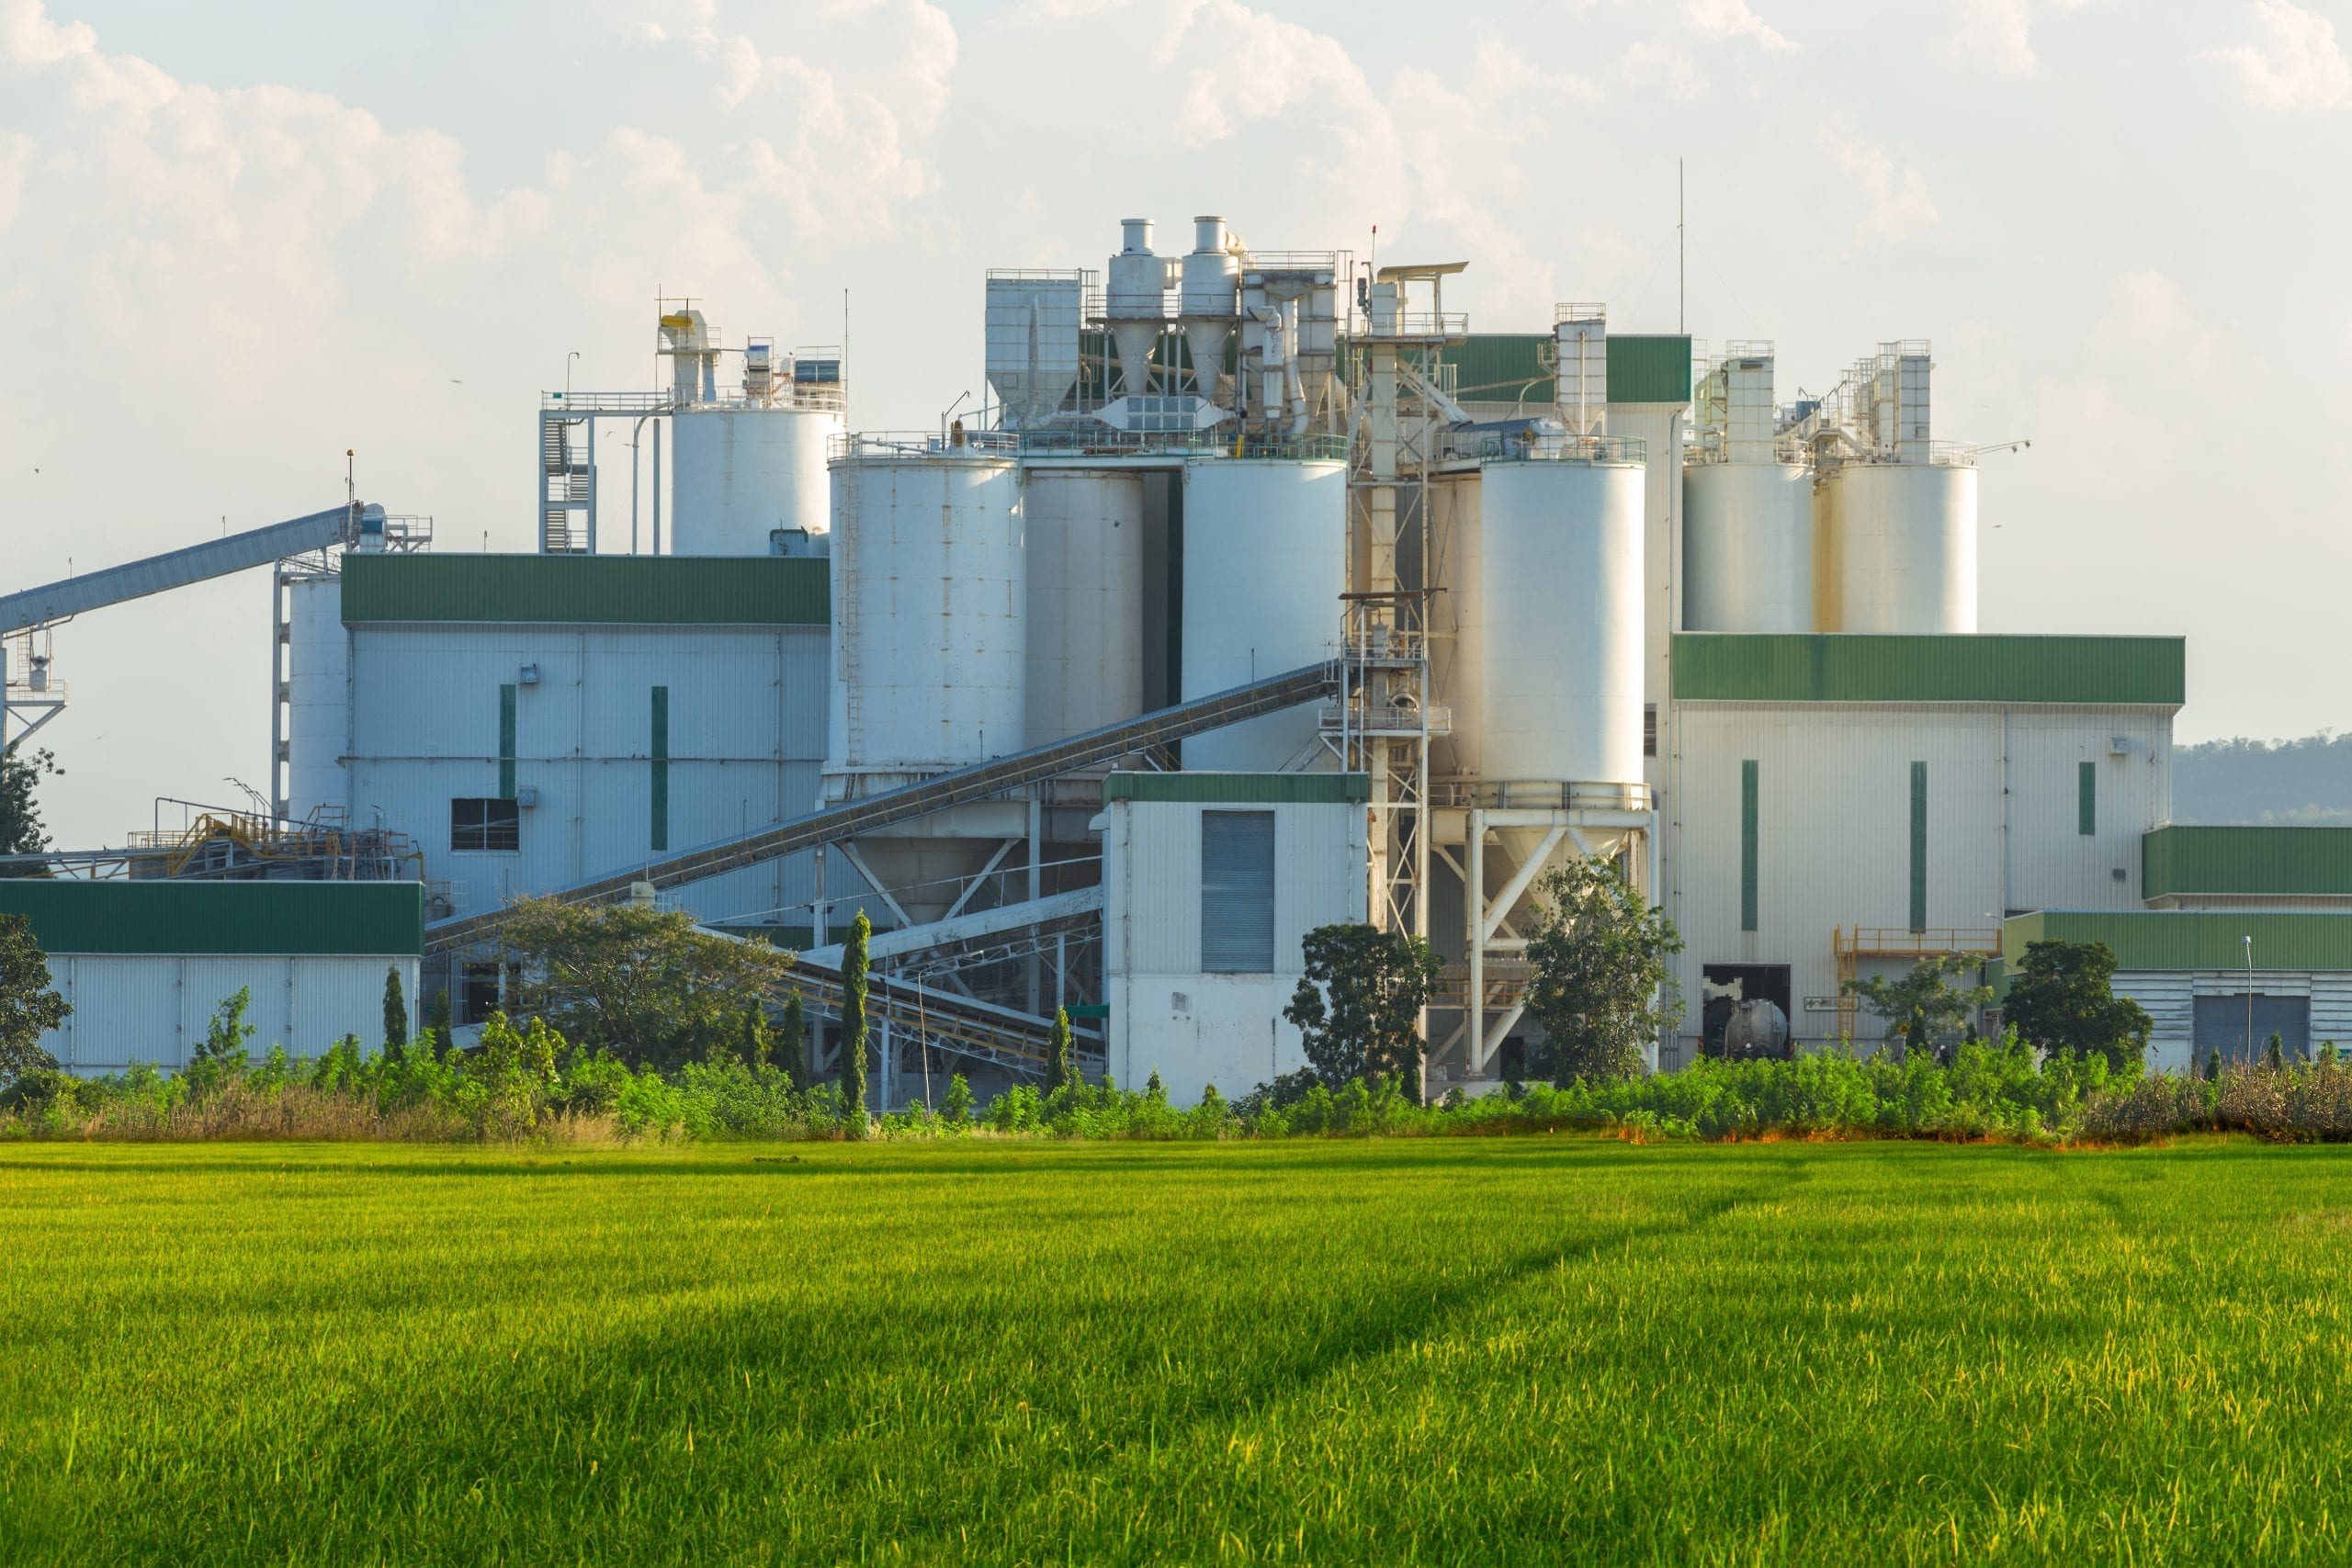 Ethanol Industrial Refinery With Rice Fields In The Foreground.